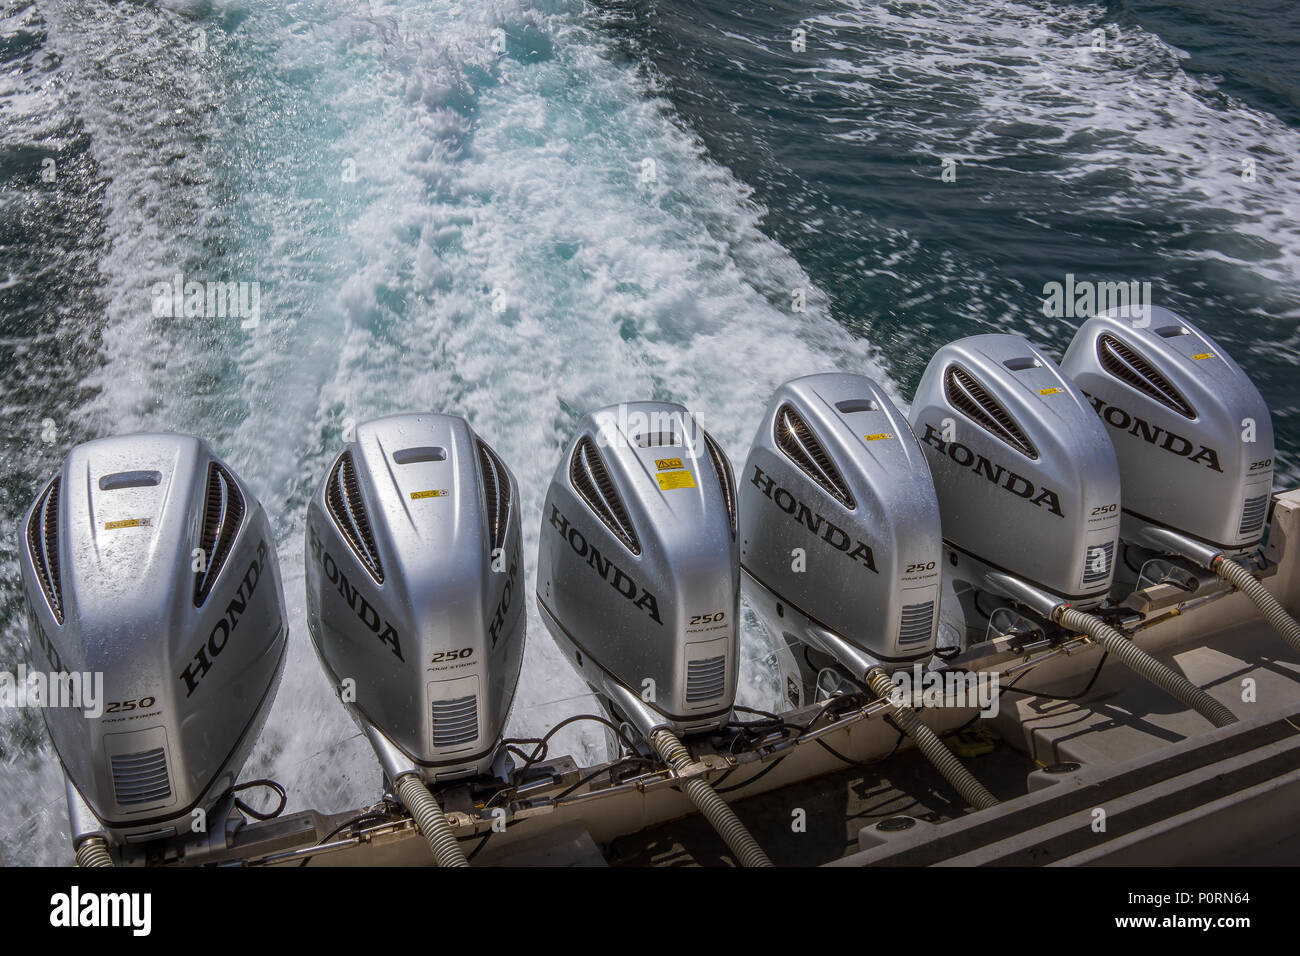 Speedboat from Lombok to Bali, six outboard motors driving the boat on the foaming sea, Bali, Indonesia, April 26, 2018 - Stock Image